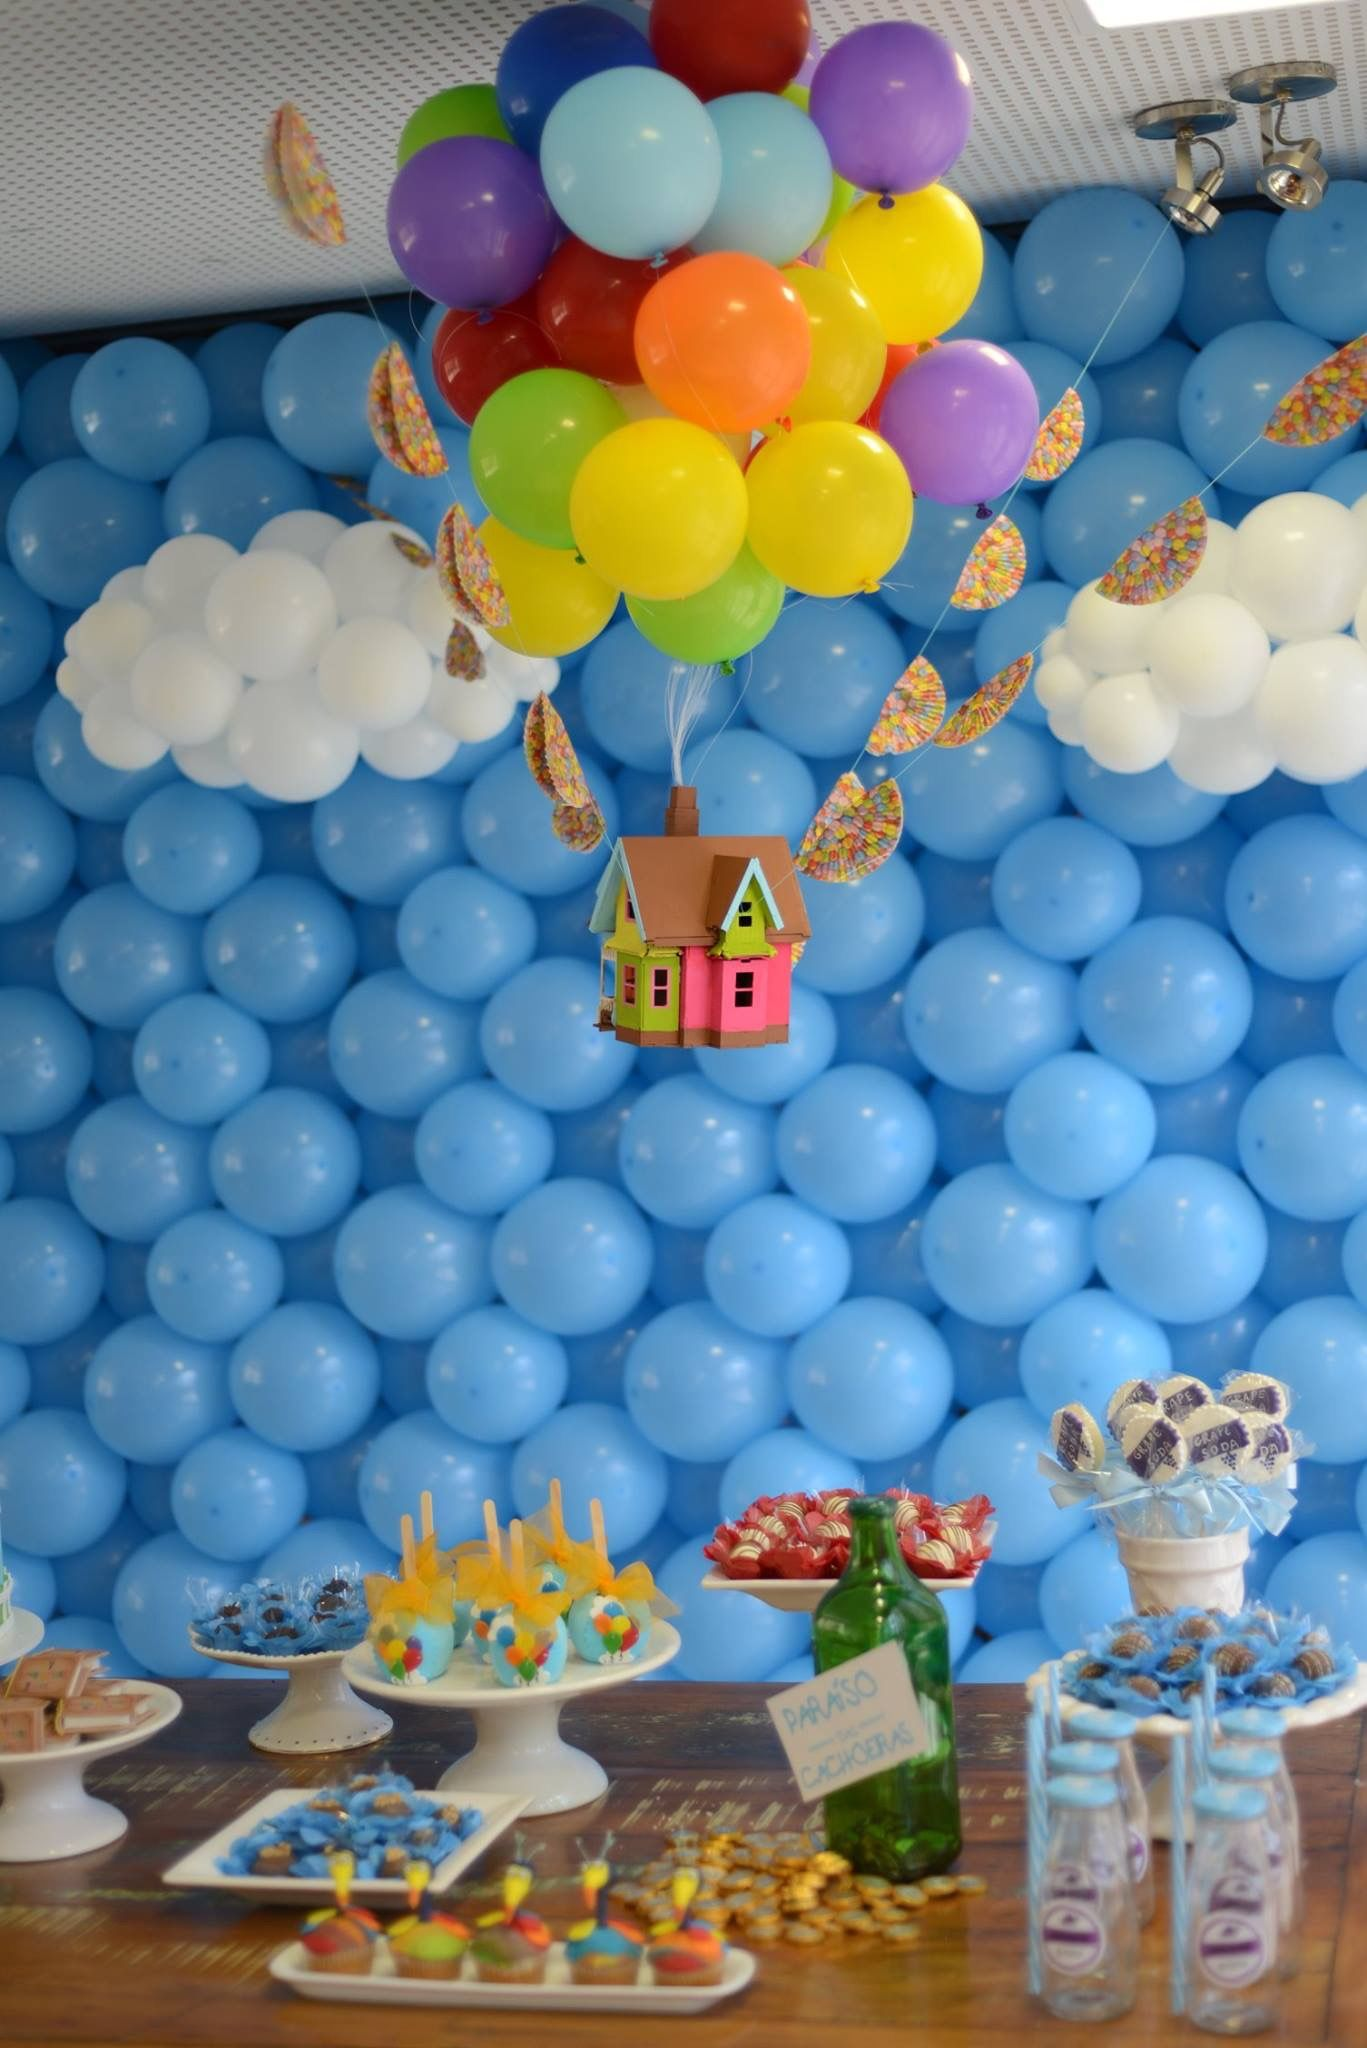 We Could Have A House Floating Behind The Podium Boys First Birthday Party Ideas Boy Birthday Parties Disney Birthday Party